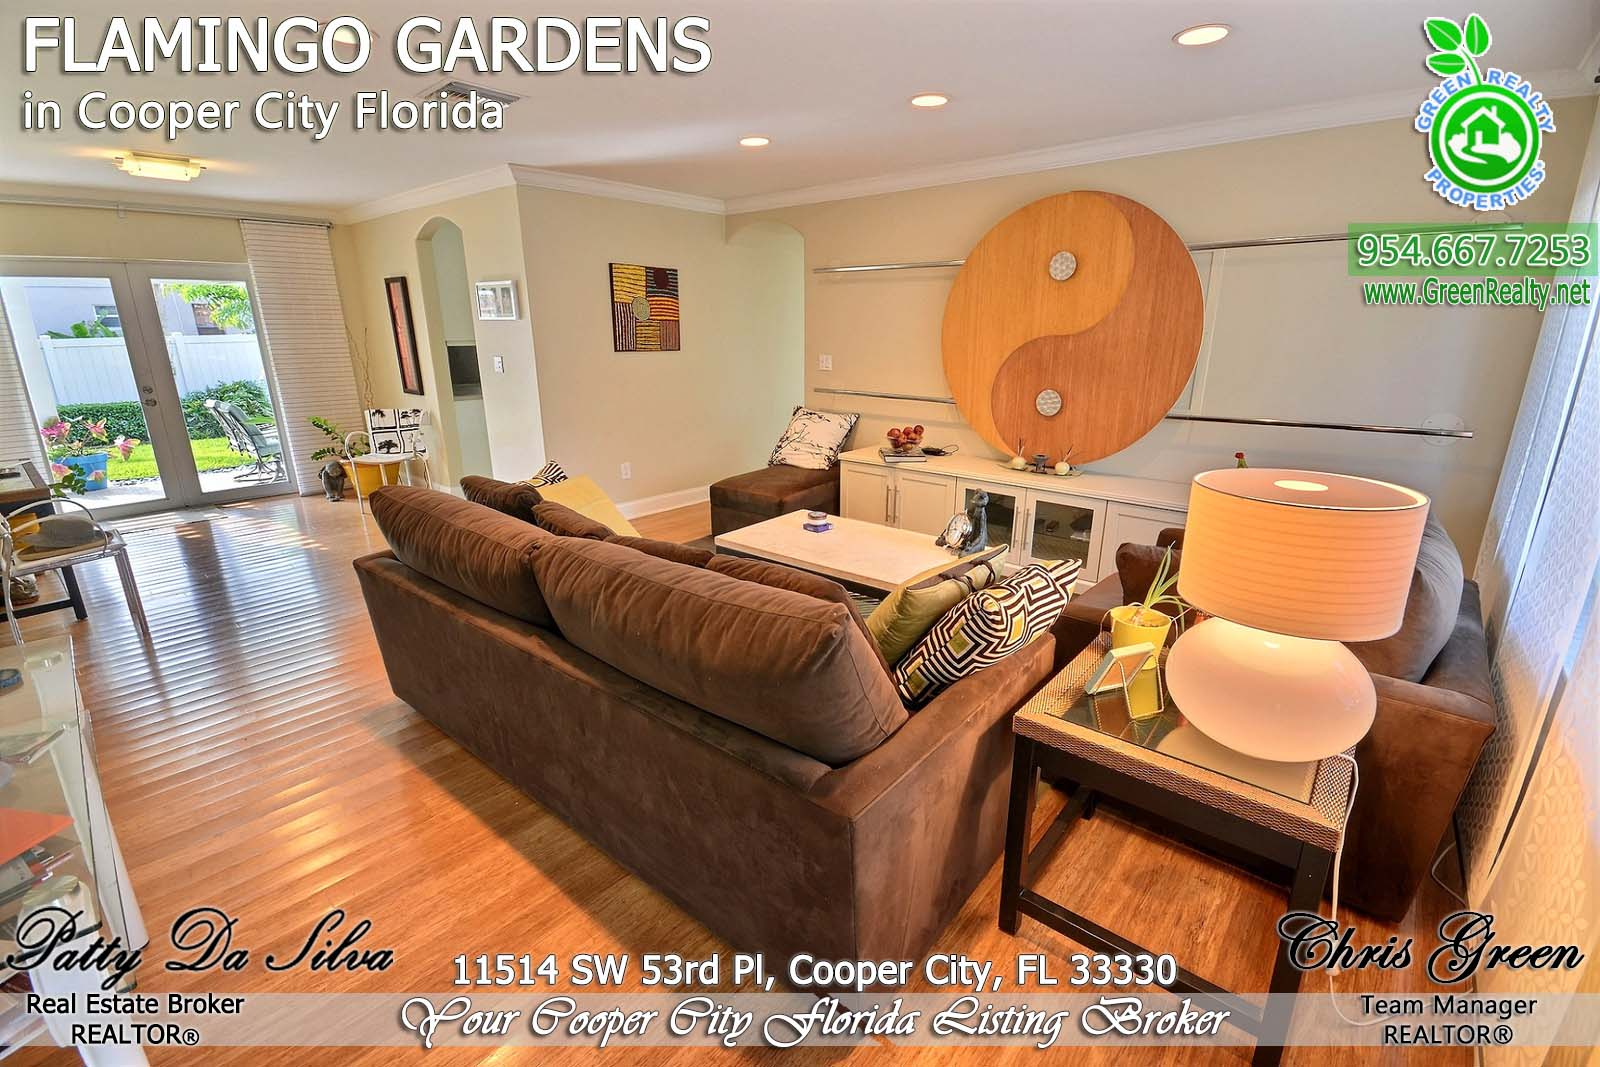 15 Flamingo Gardens Cooper City Homes For Sale (12)